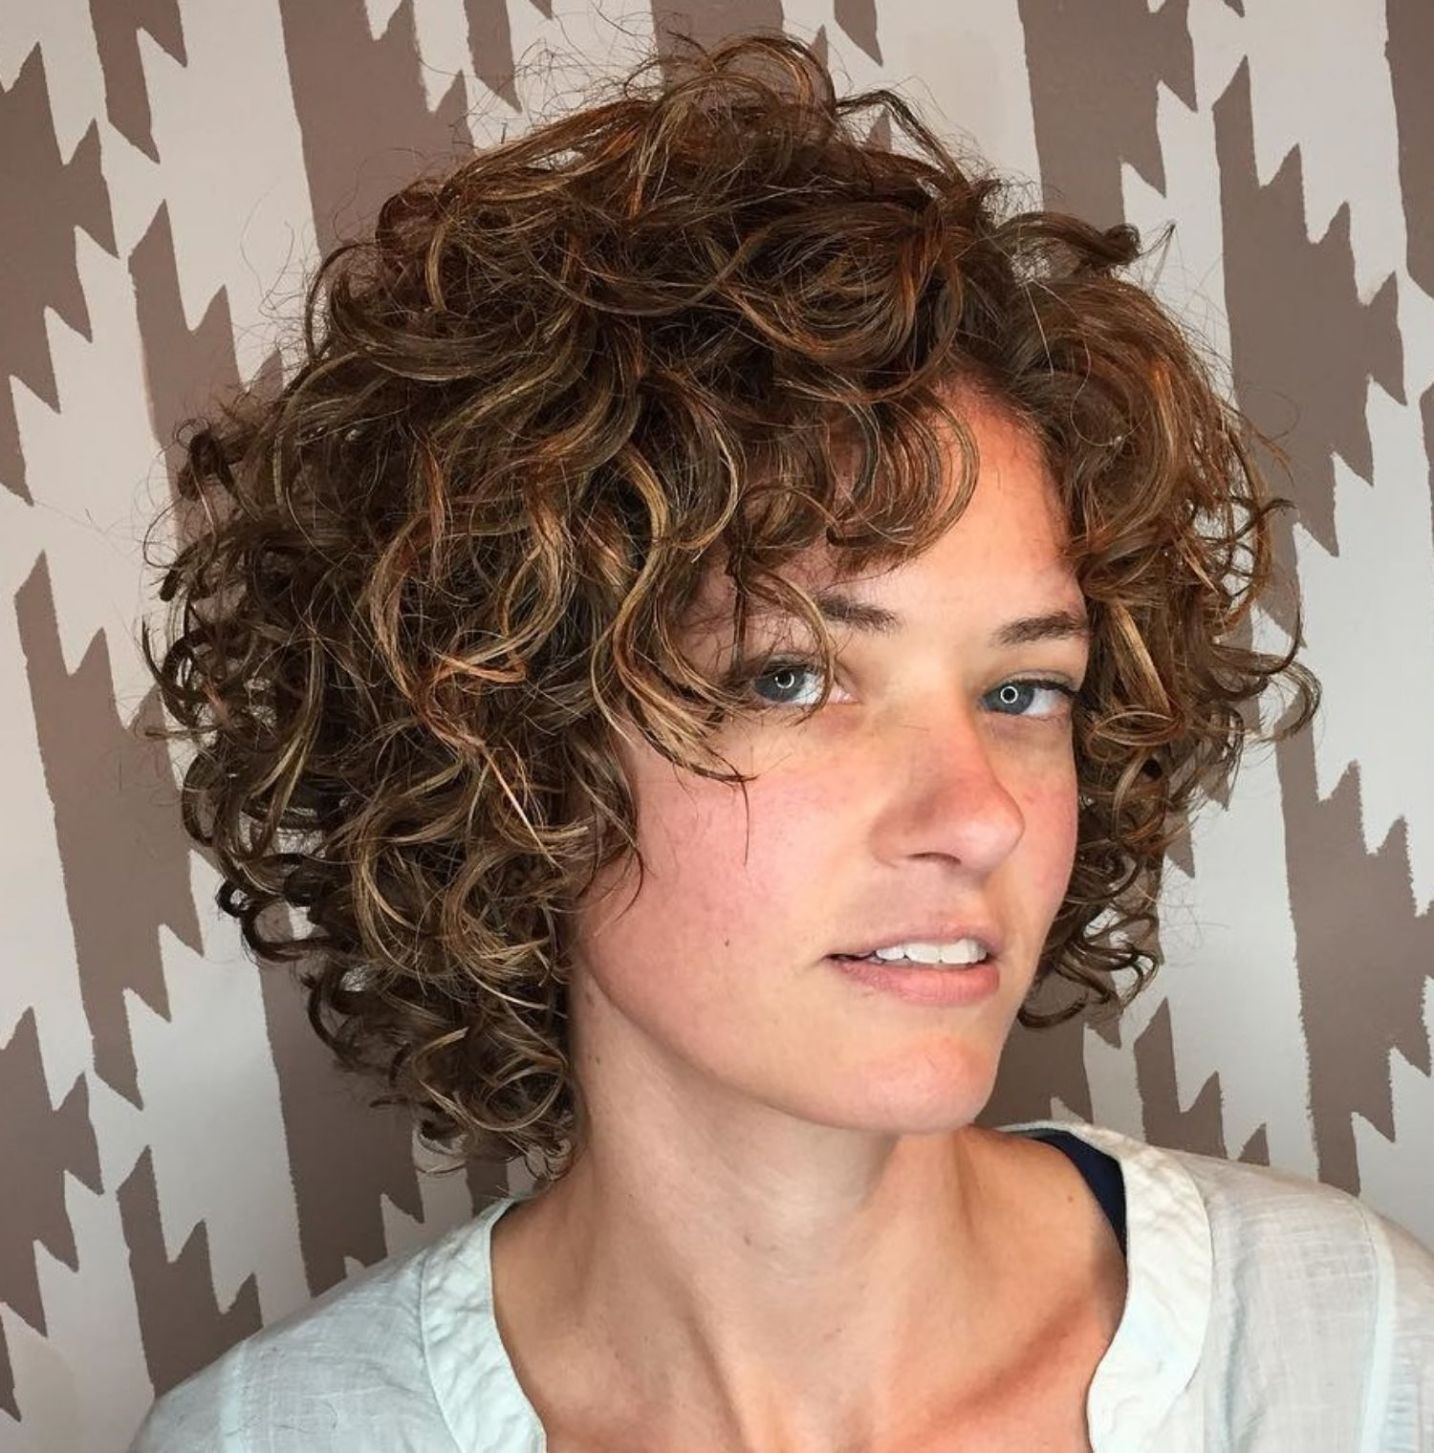 65 Different Versions of Curly Bob Hairstyle in 2020   Curly hair styles, Short curly haircuts ...